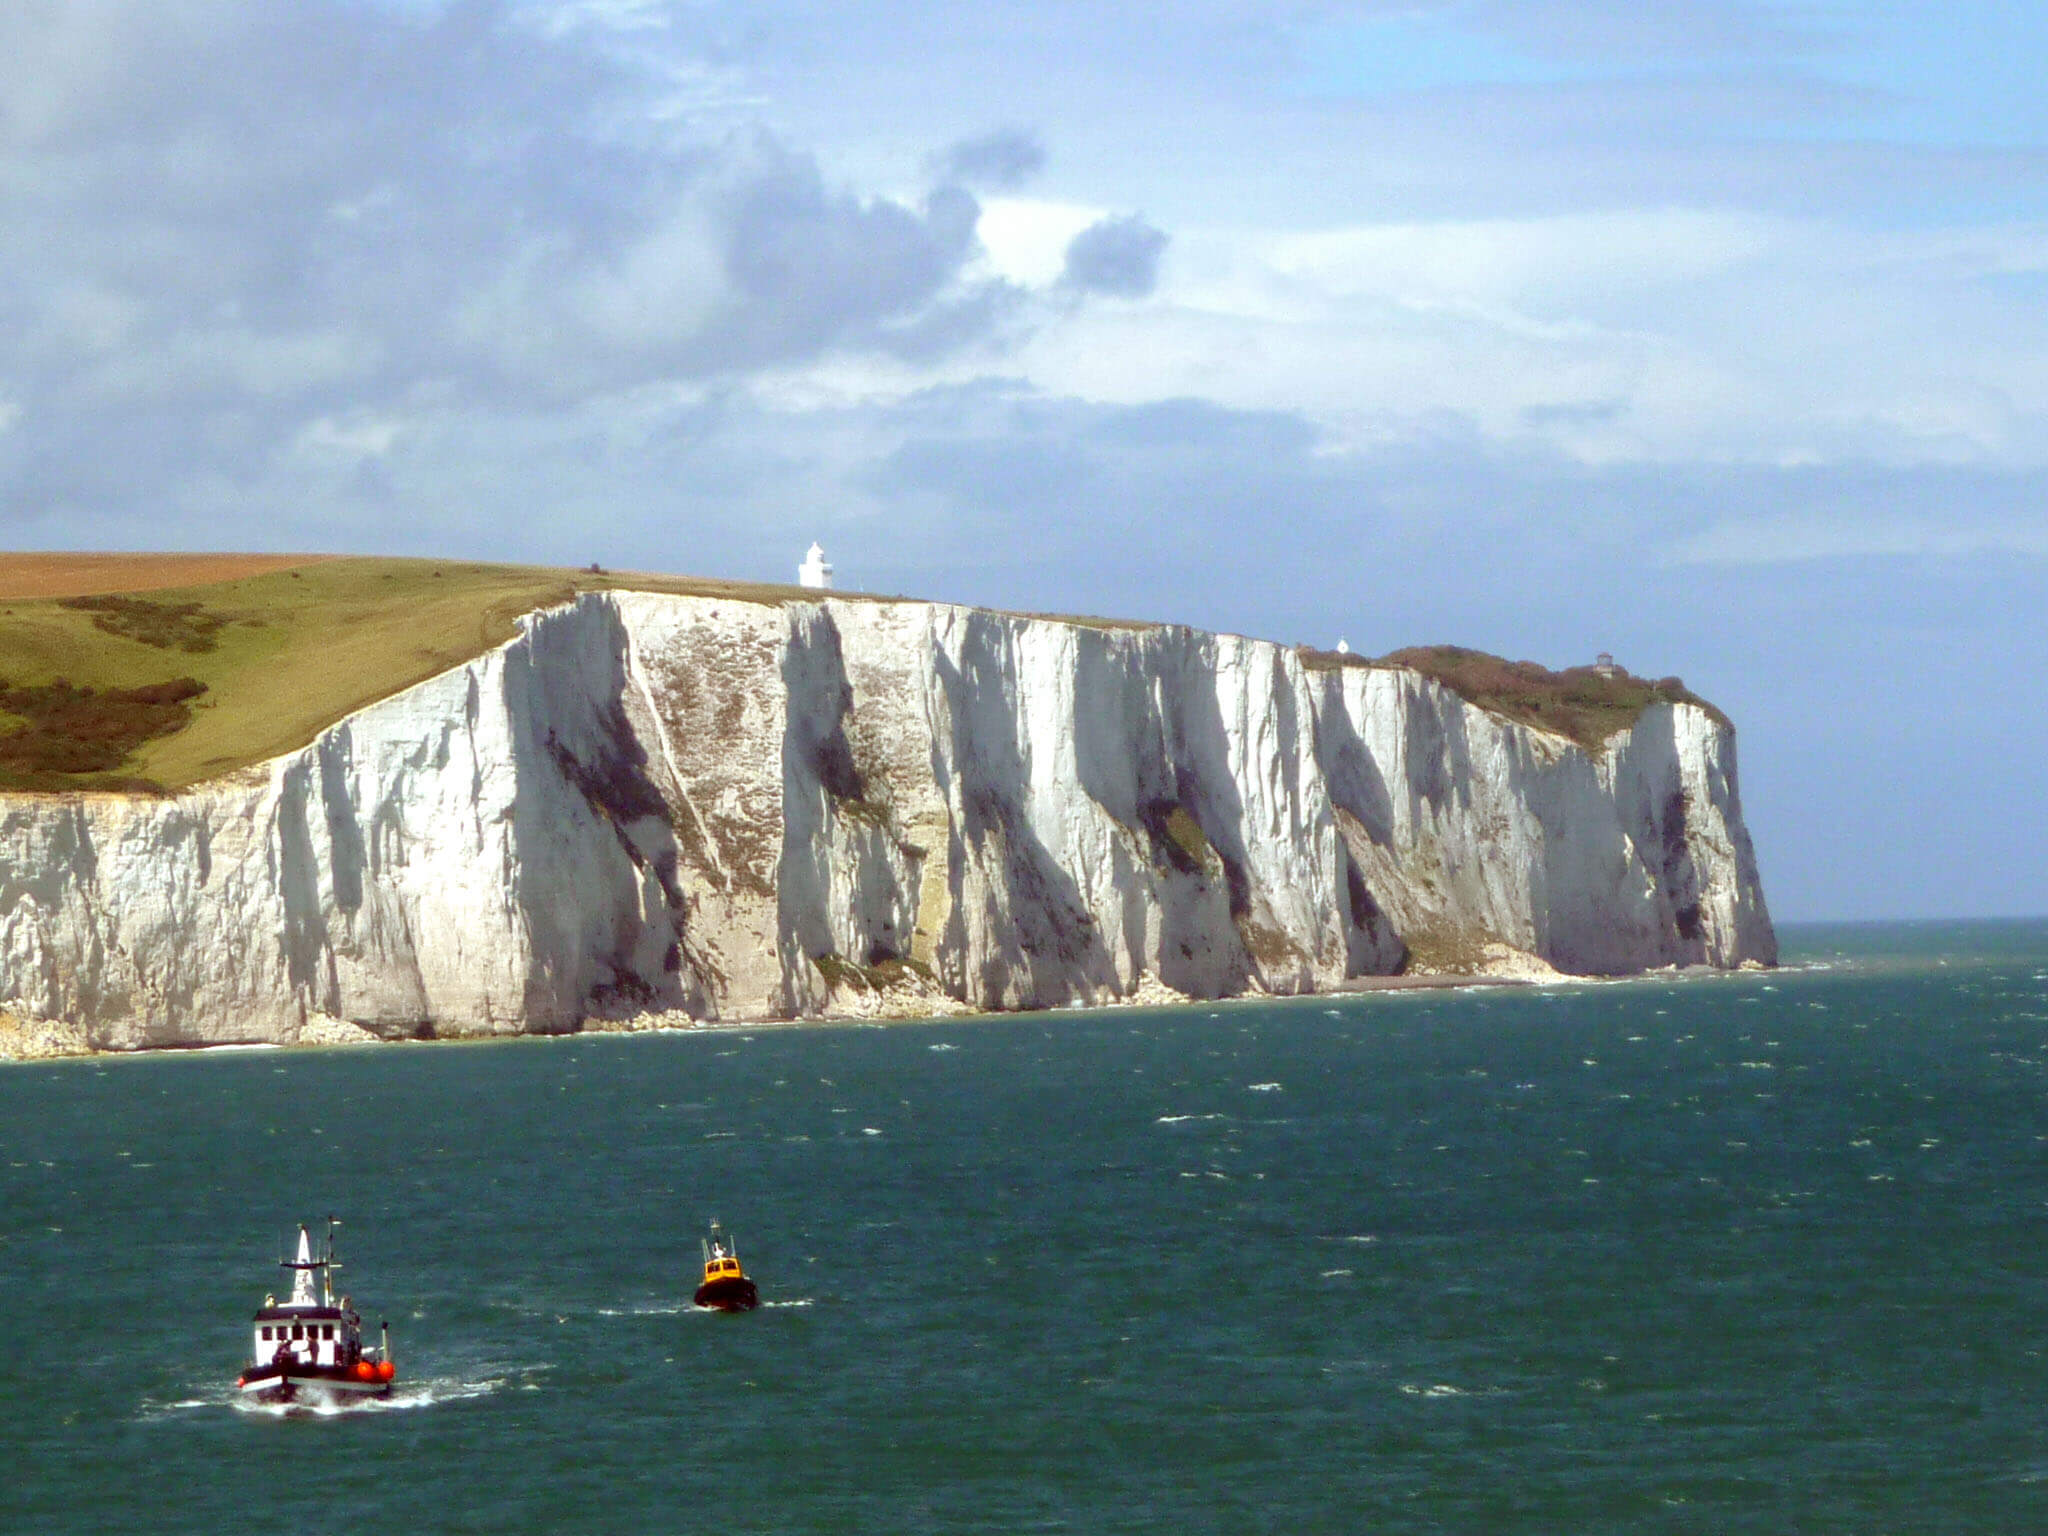 diatomaceous earth is what the white cliffs of dover are made of